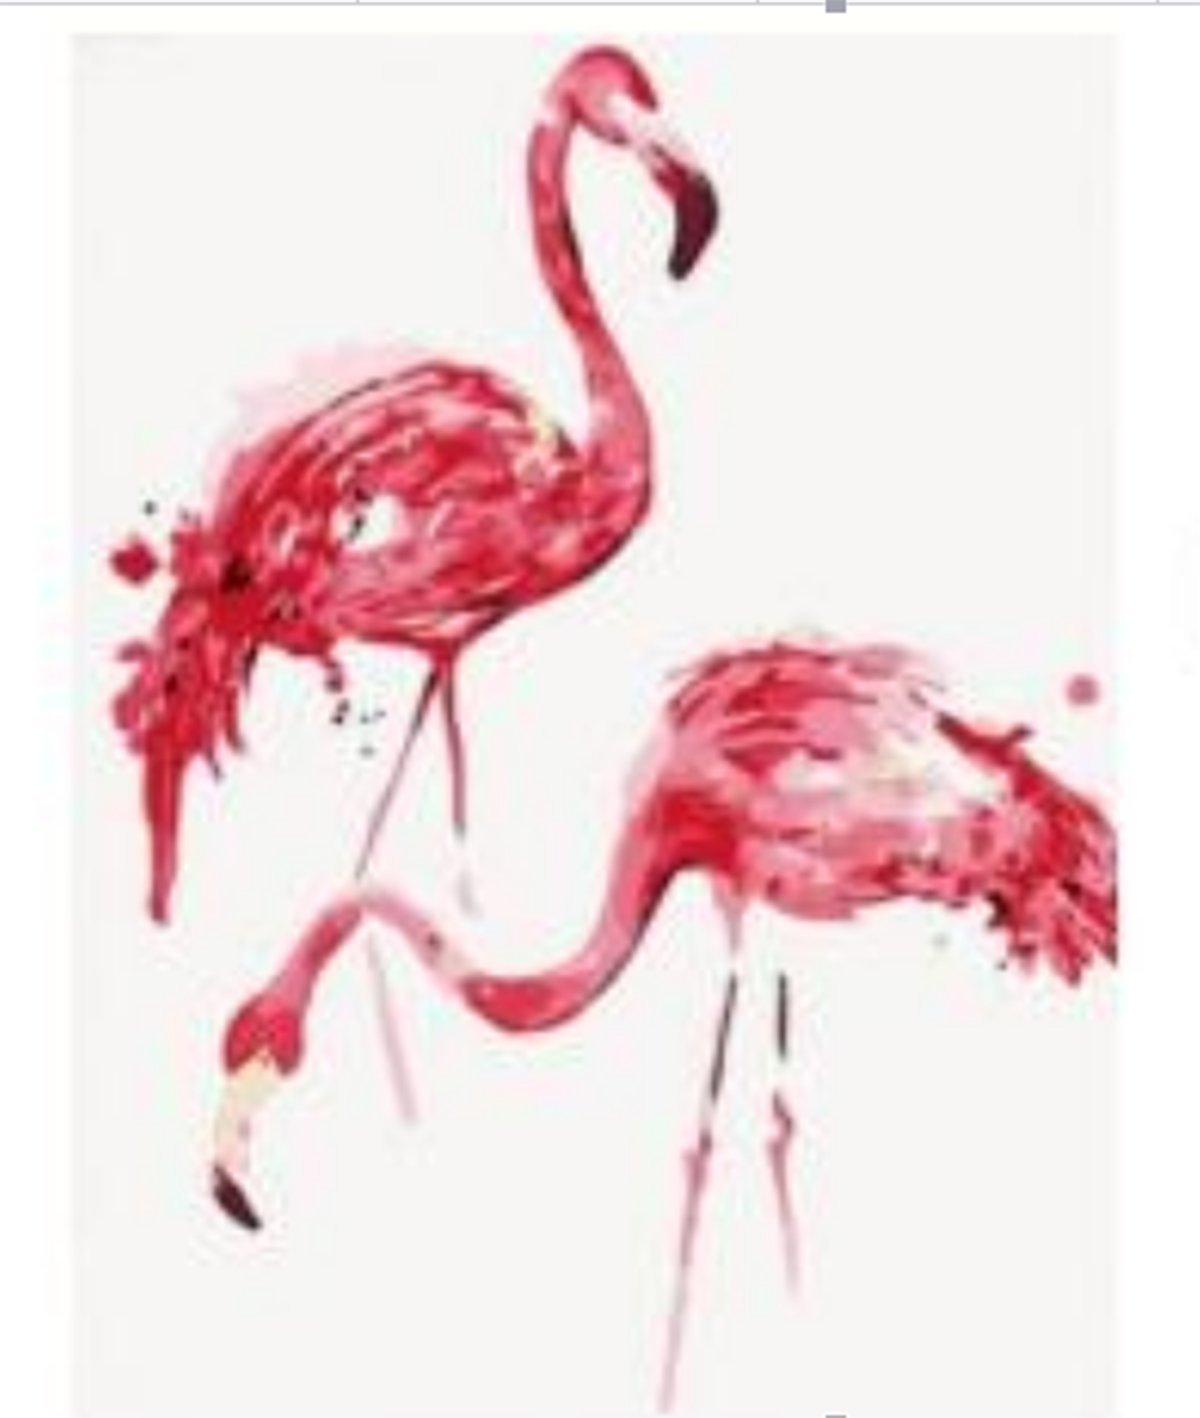 Shukqueen Diy Oil Painting, Adult's Paint by Number Kits, Acrylic Painting Flamingos 16X20 Inch (Frameless)